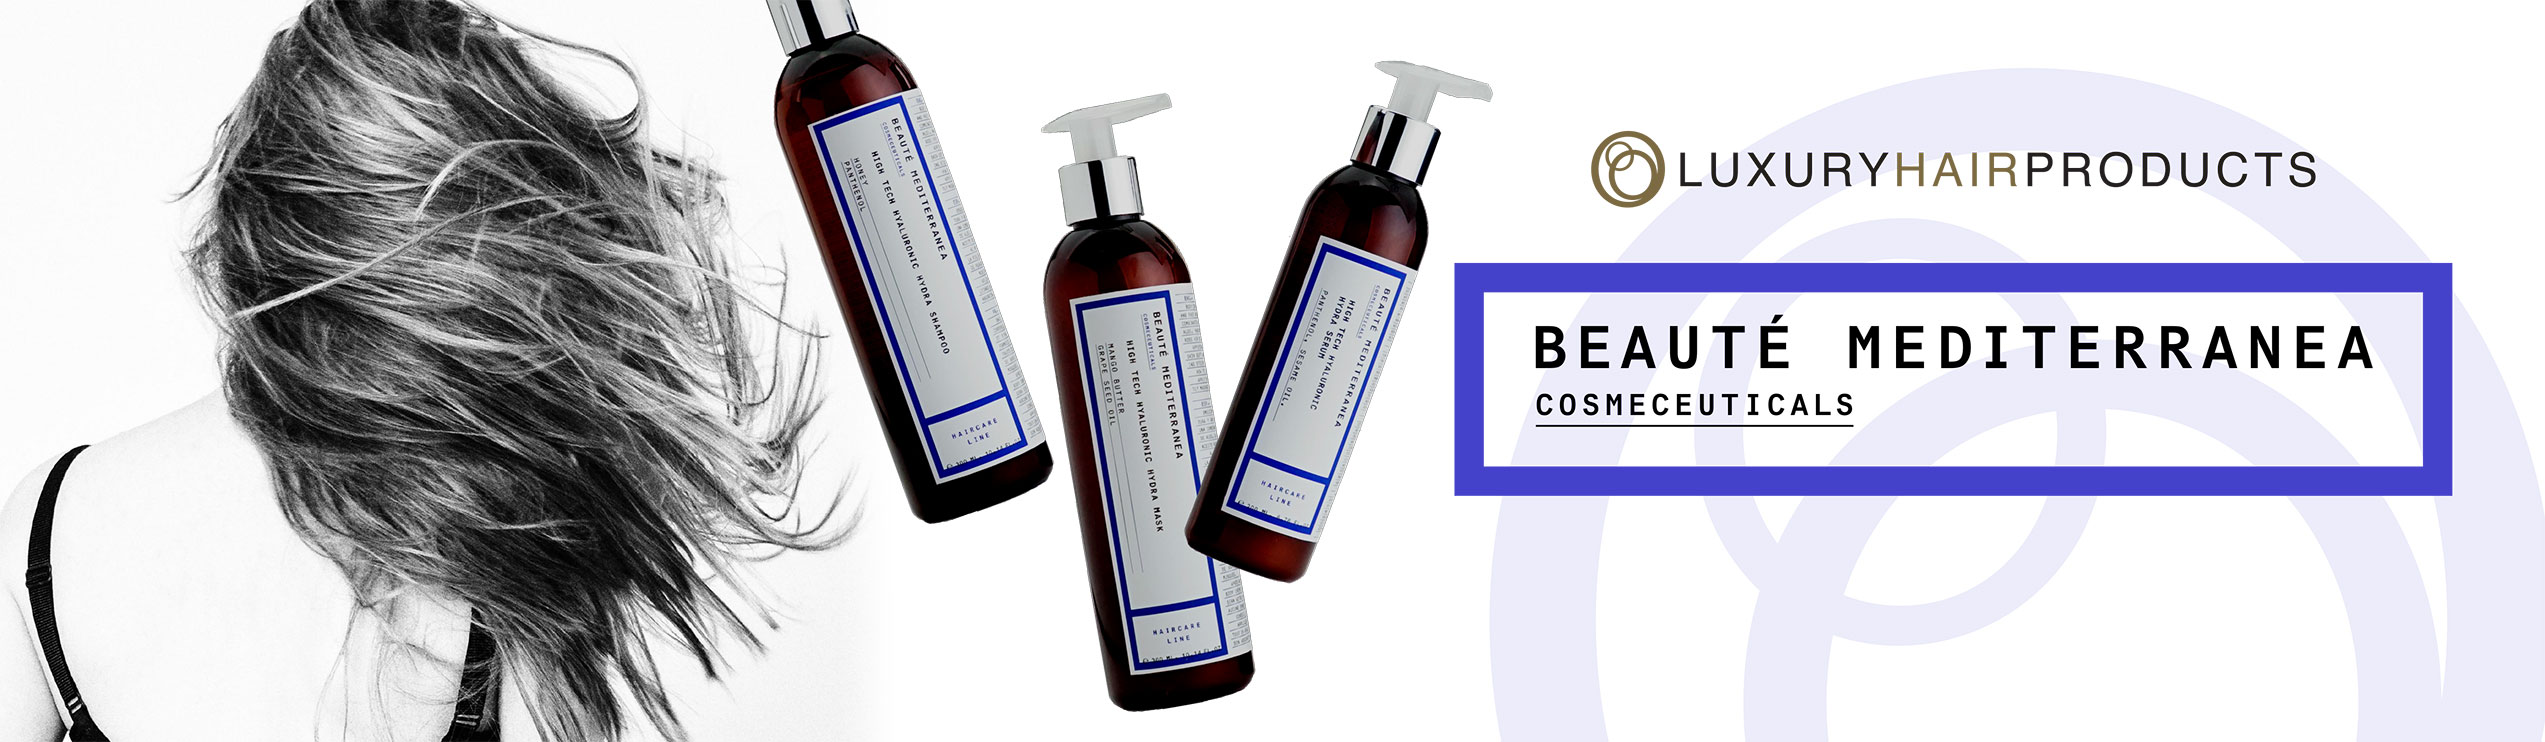 Beauté-Mediterranea-Luxury-Hair-Products-Web-Banner-Concepts-002-2545x742